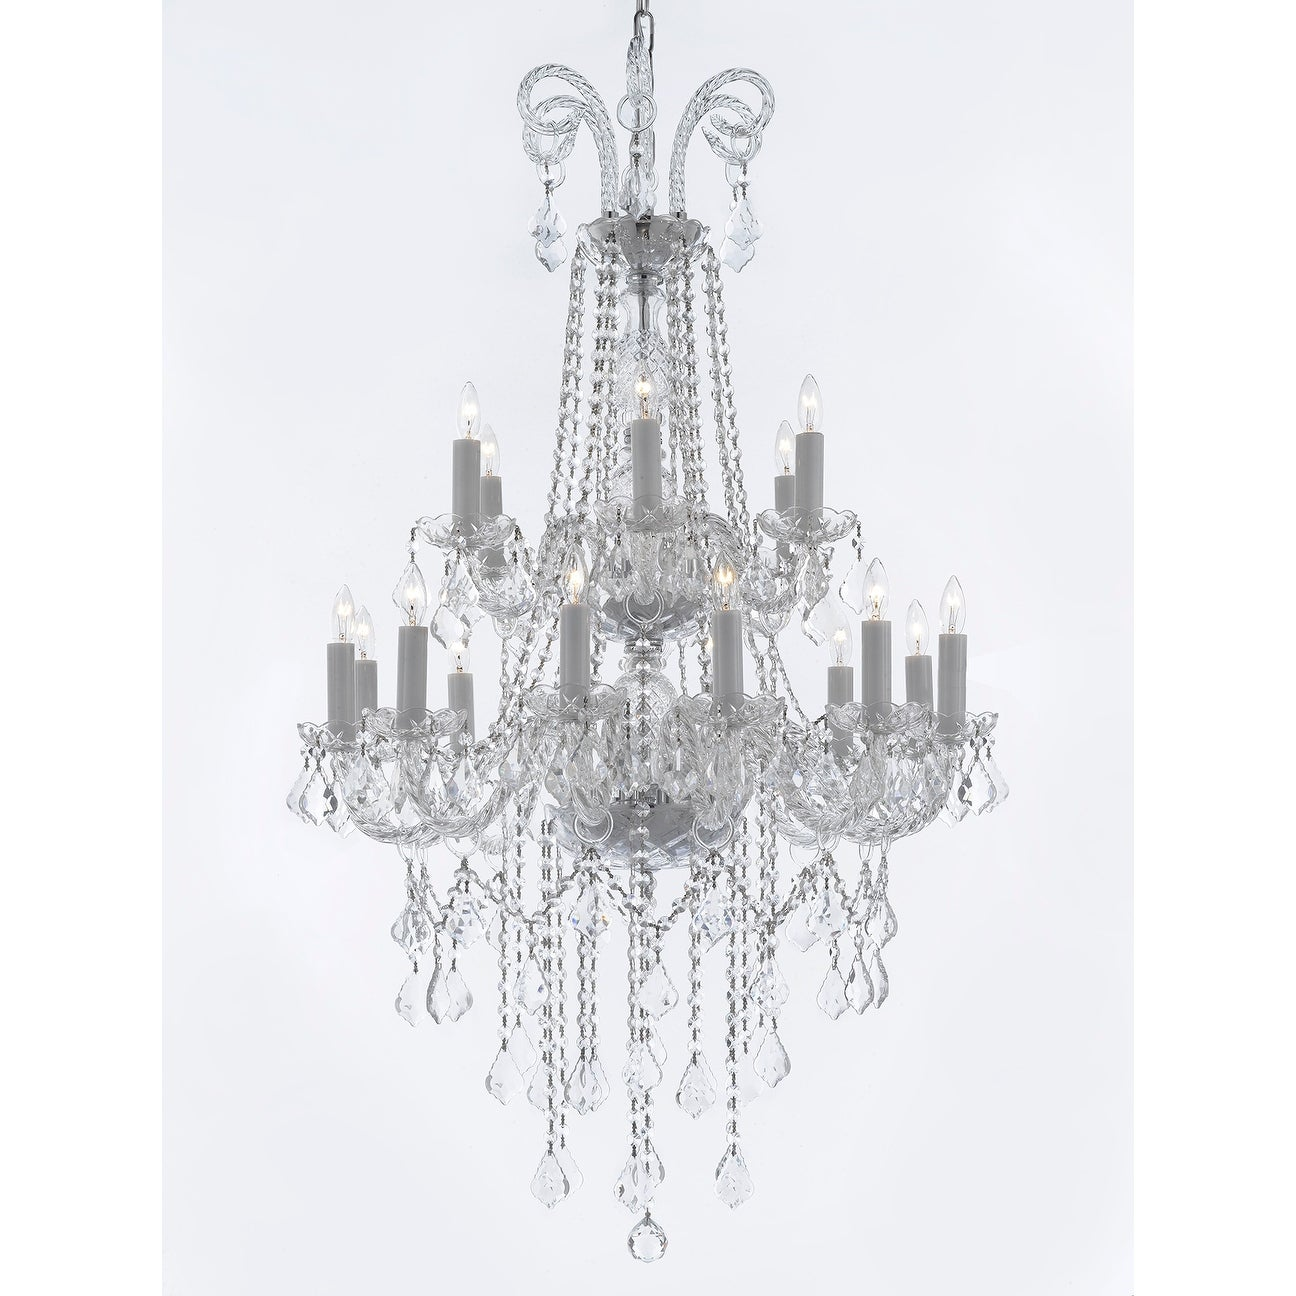 Crystal 18 light traditional chandelier 2 tier free shipping today crystal 18 light traditional chandelier 2 tier free shipping today overstock 18875857 arubaitofo Image collections